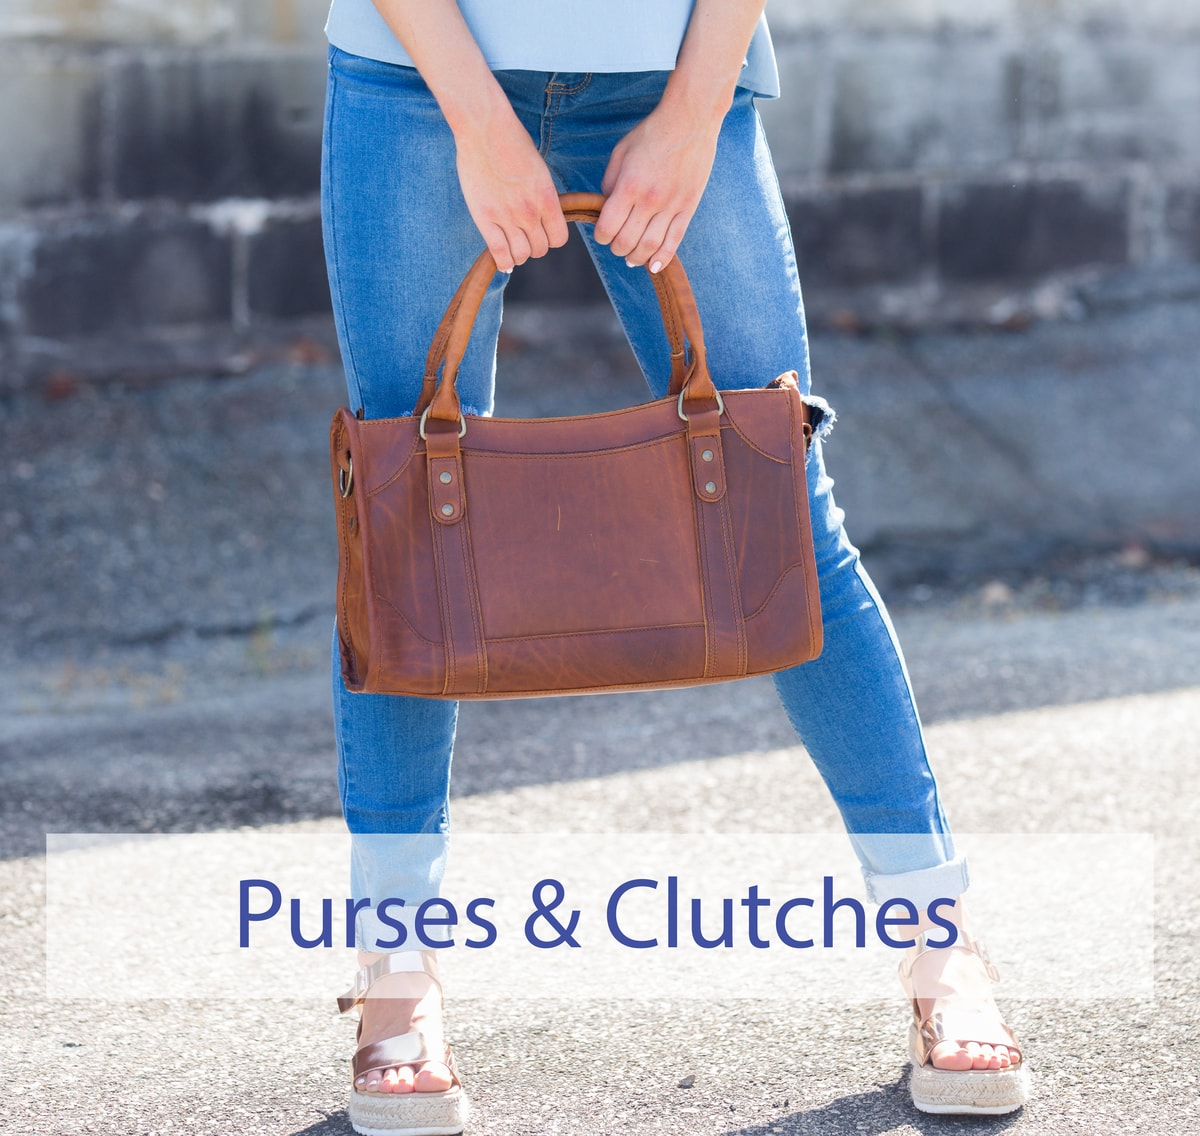 Purses and Clutches